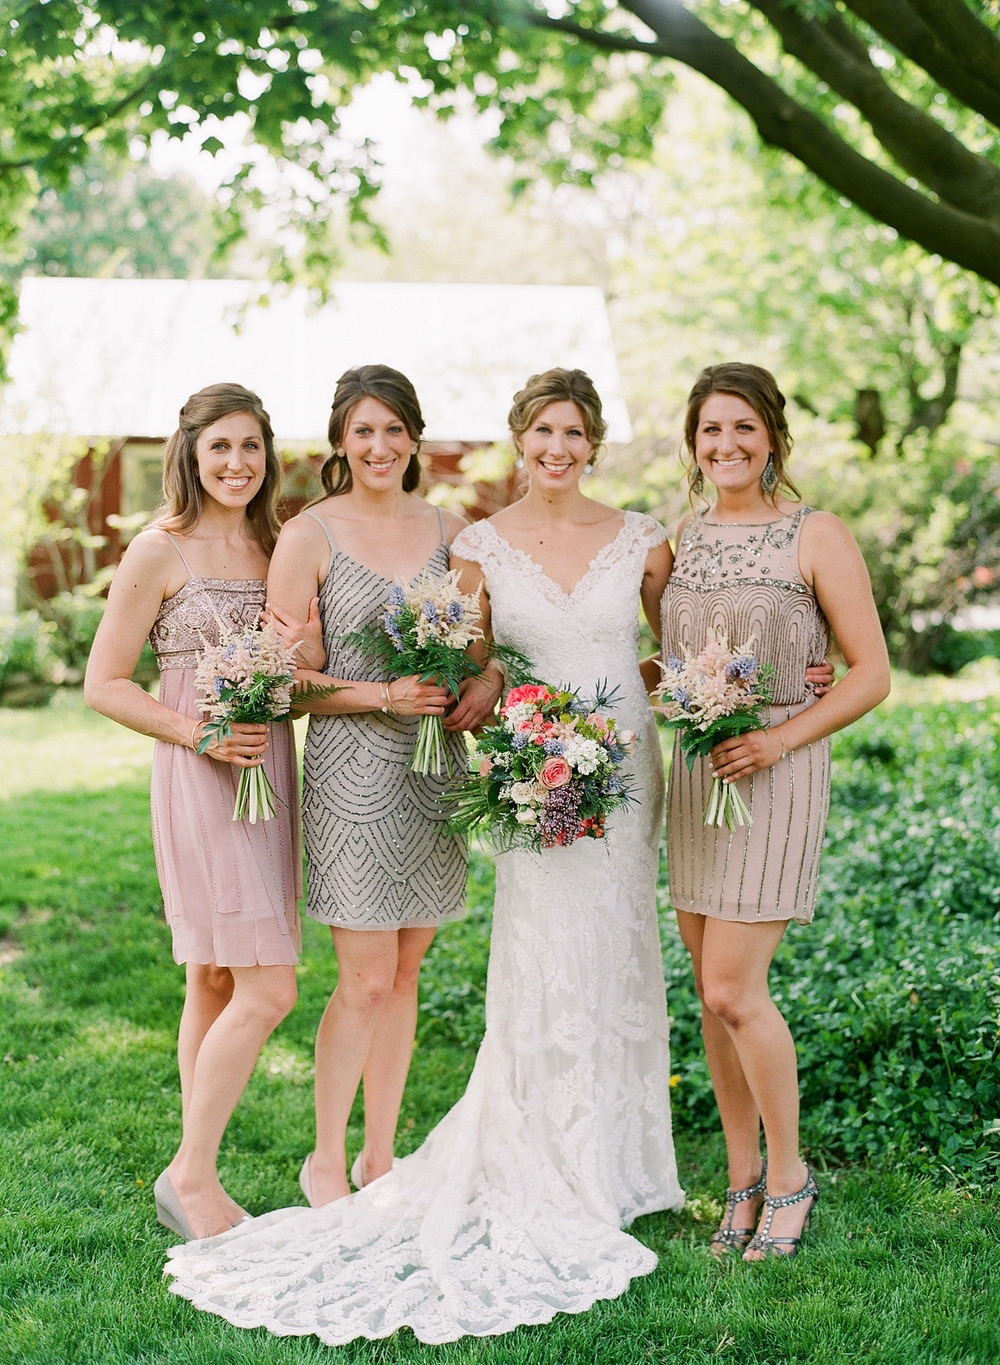 art deco nude bridesmaid dresses look great on the bridesmaids at this springtime wedding at Northwind Perennial Gardens - a beautiful wisconsin wedding venues - while Destination Wedding photographer Lexia Frank photographs this wedding on film